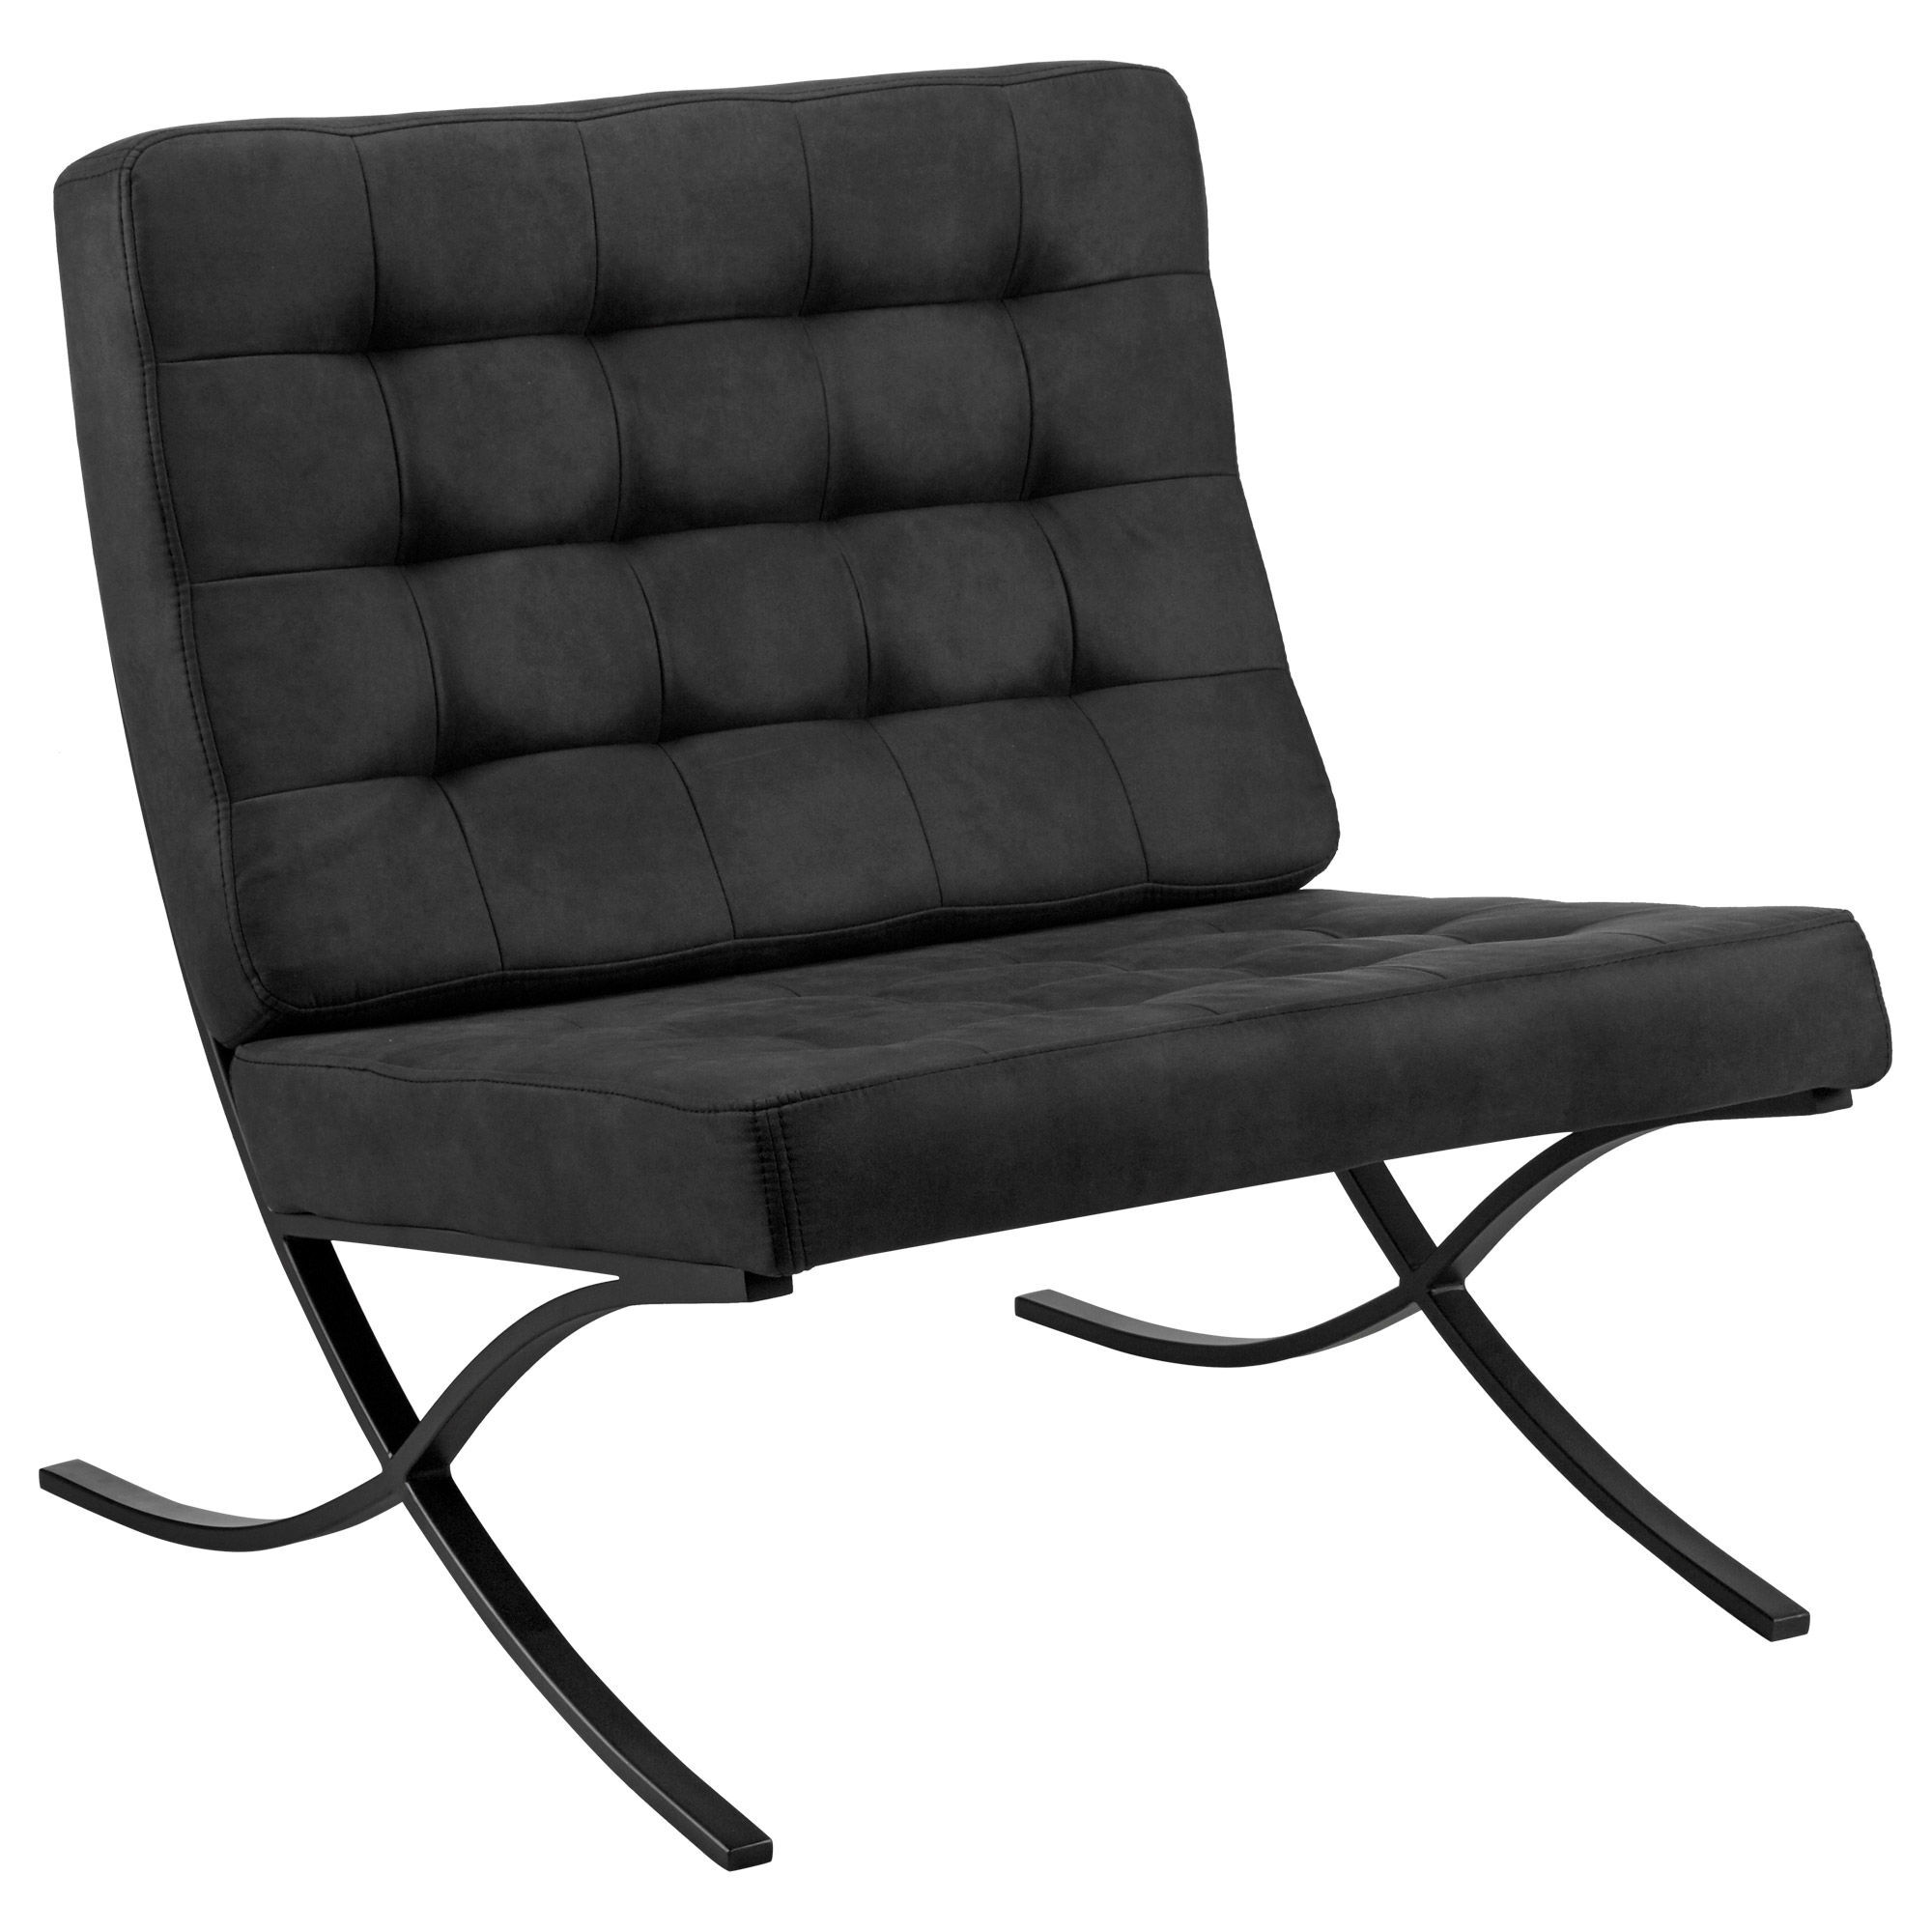 Barcelona Lounge Chair Barcelona Lounge Chair With Metal Legs Bouclair